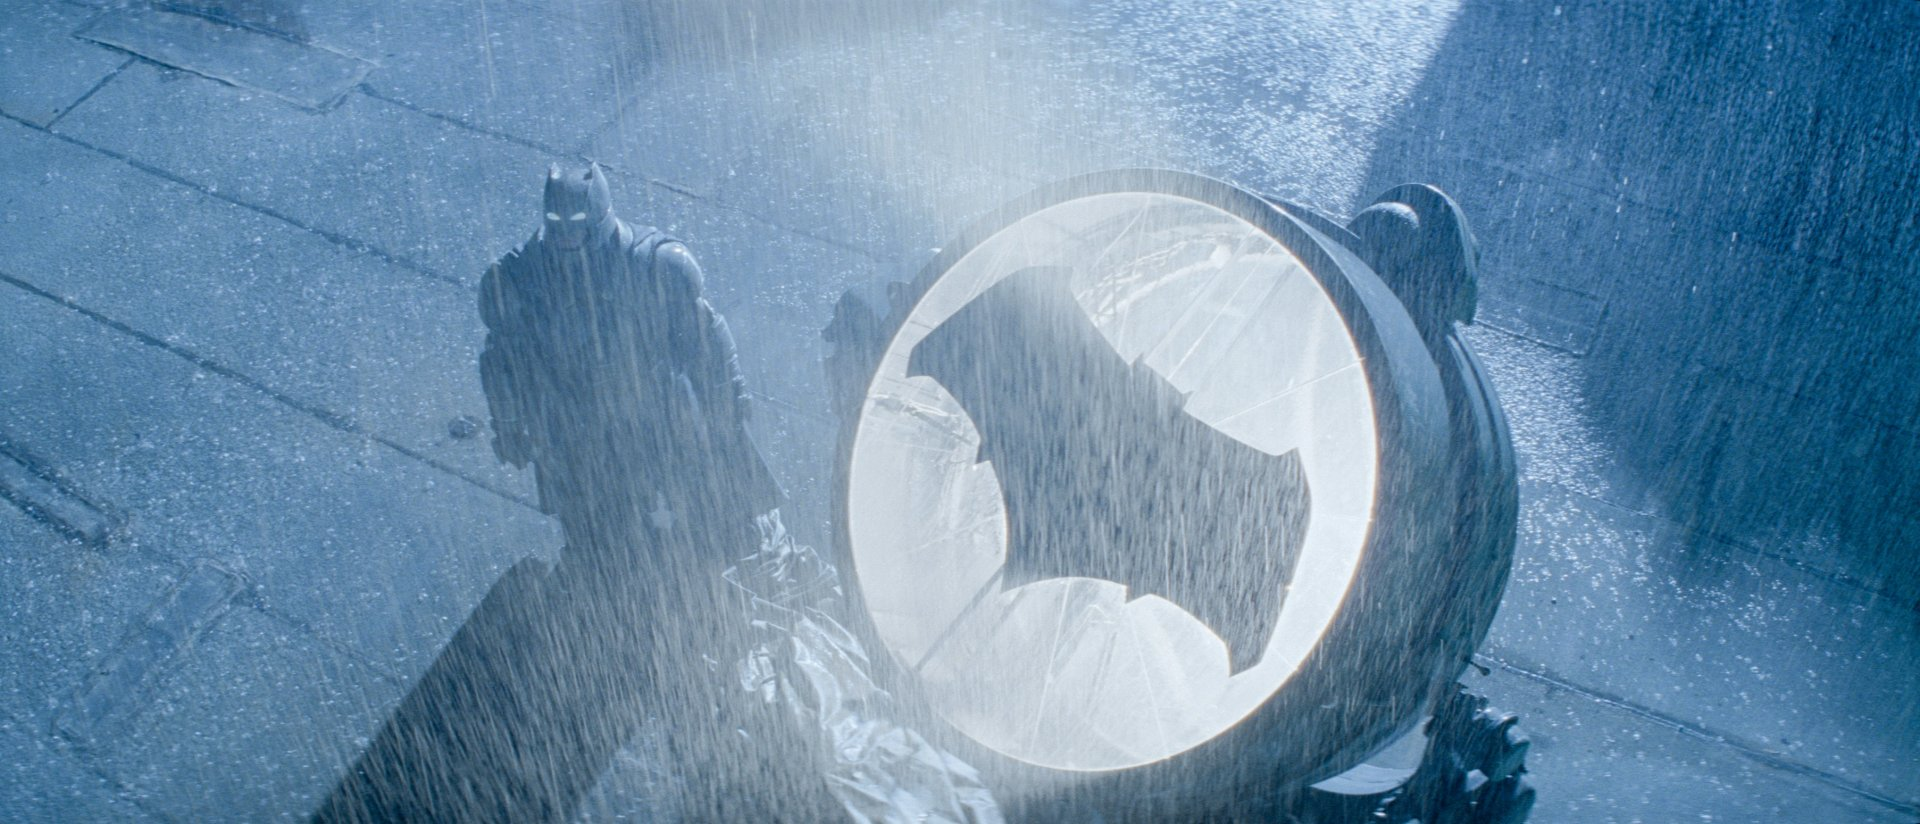 Movie - Batman v Superman: Dawn of Justice  Batman Bat-Signal Wallpaper